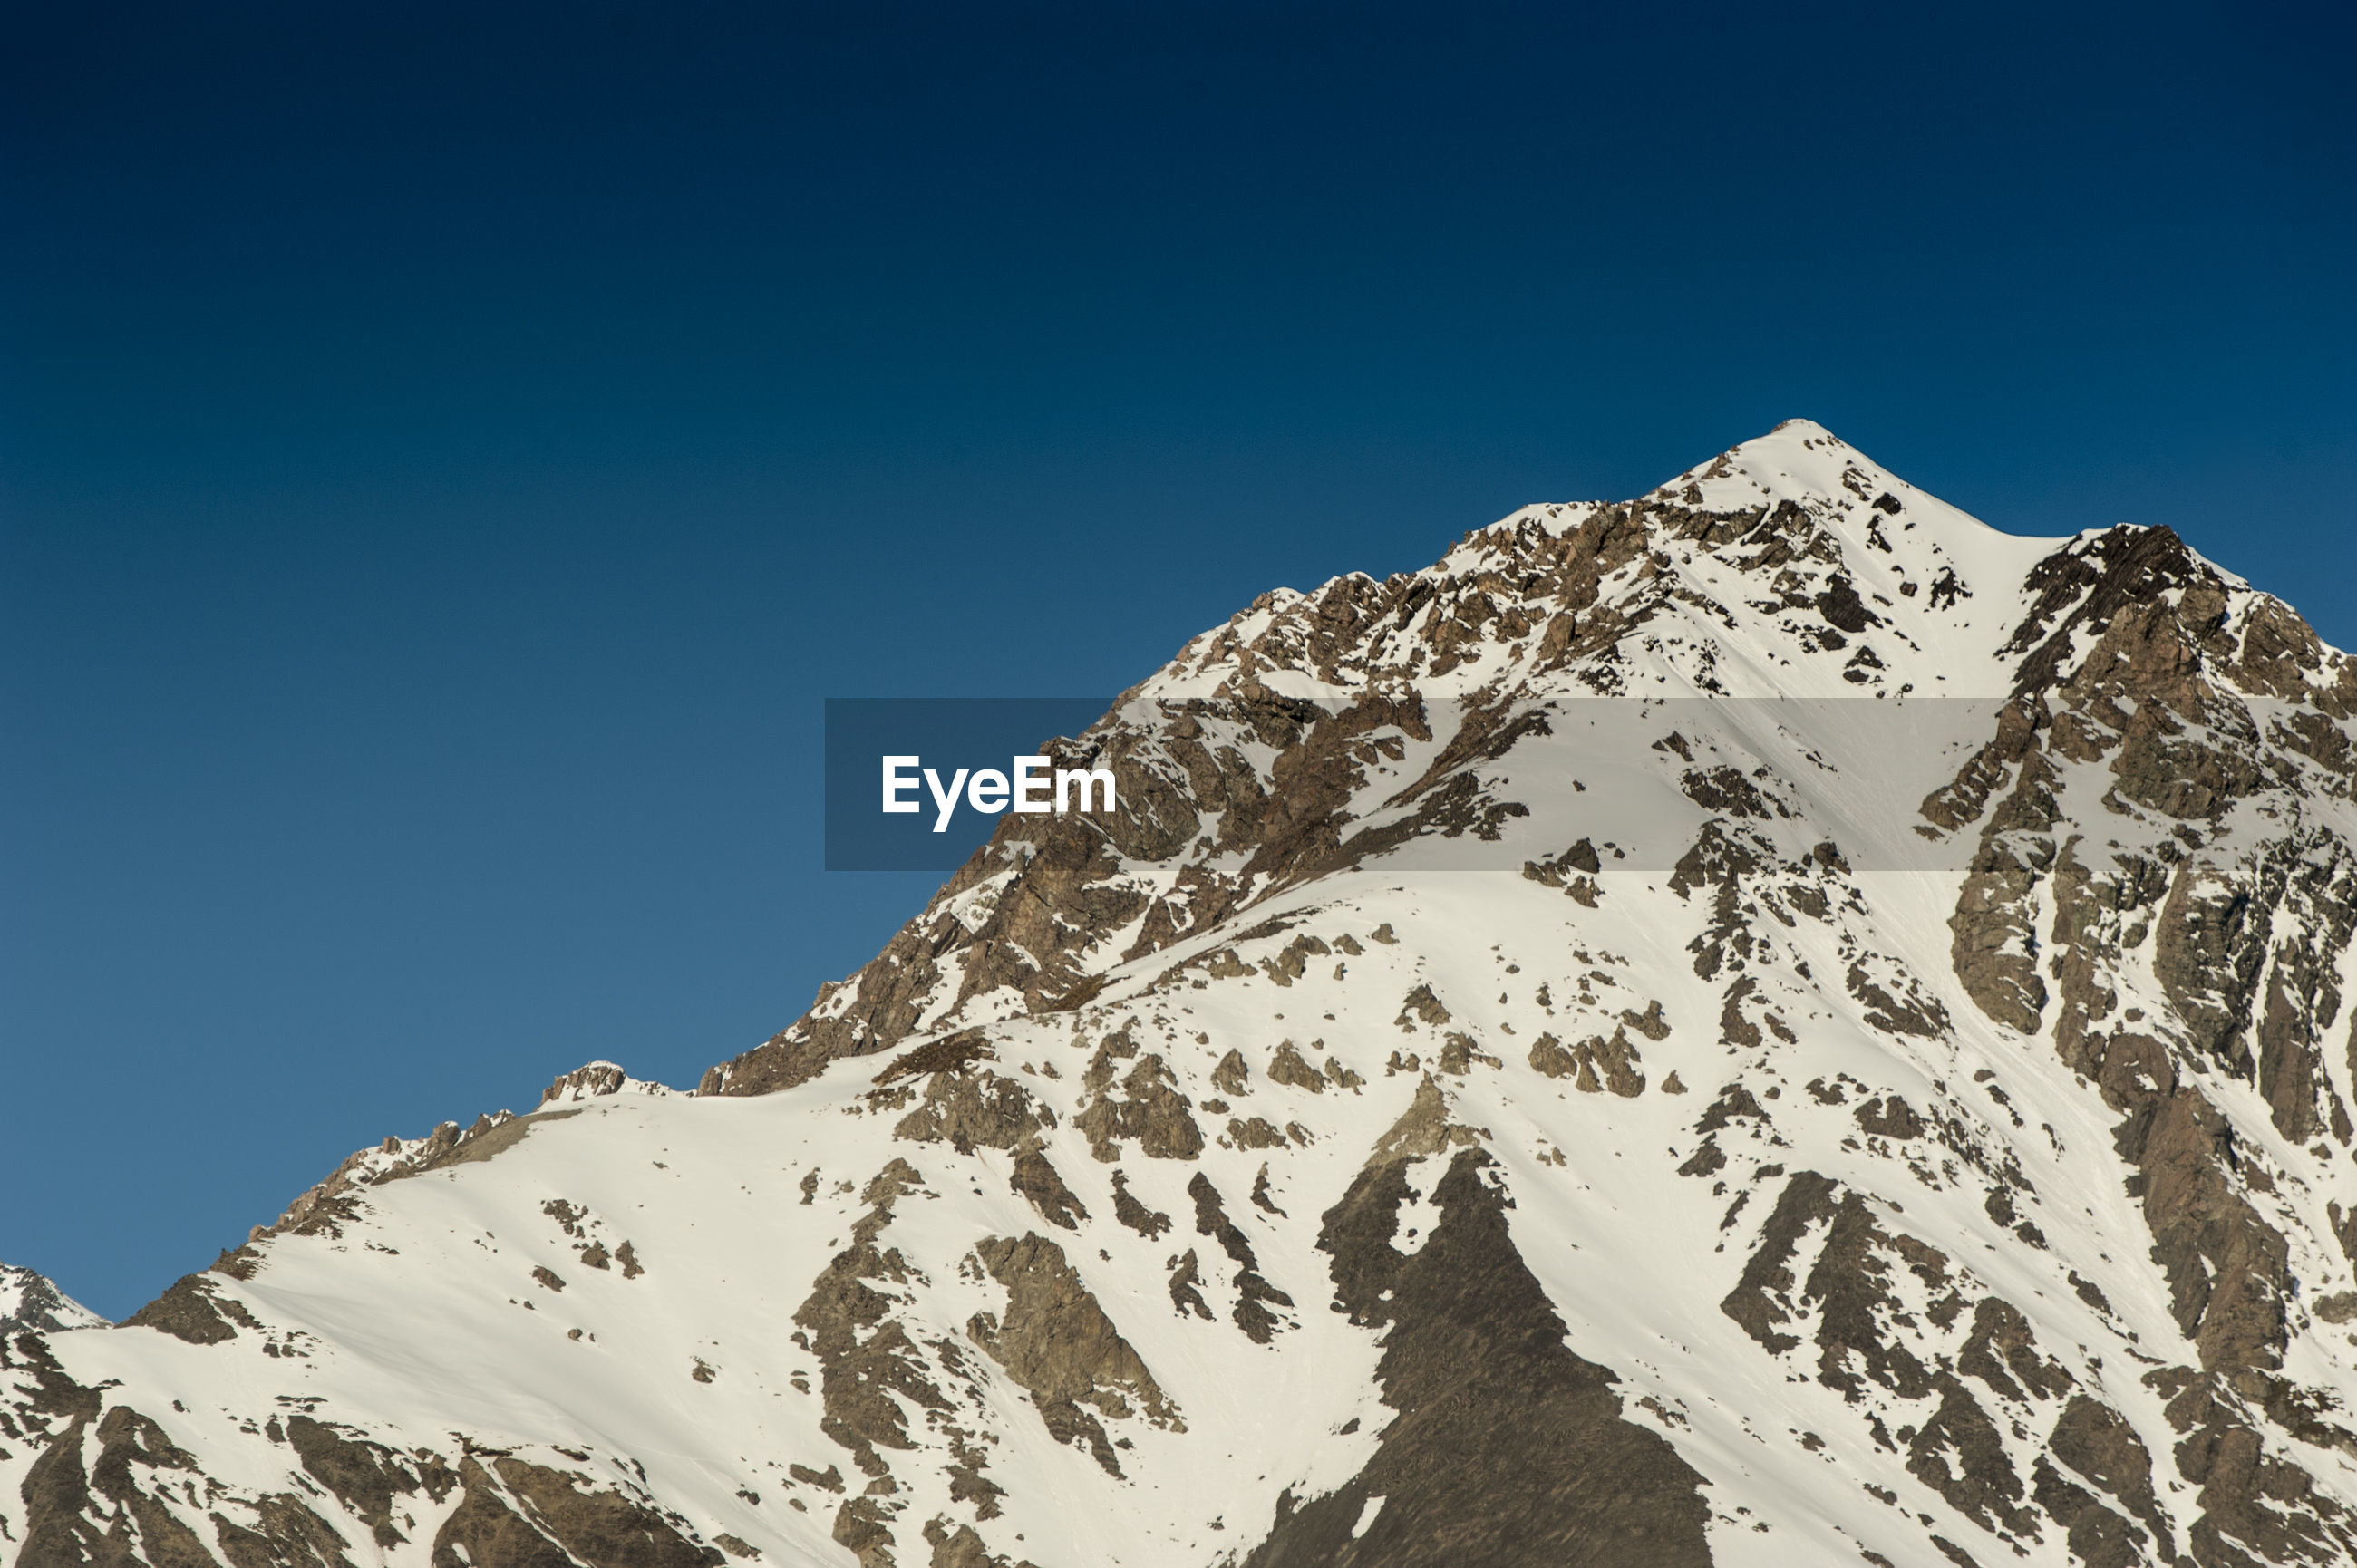 LOW ANGLE VIEW OF SNOWCAPPED MOUNTAIN AGAINST BLUE SKY